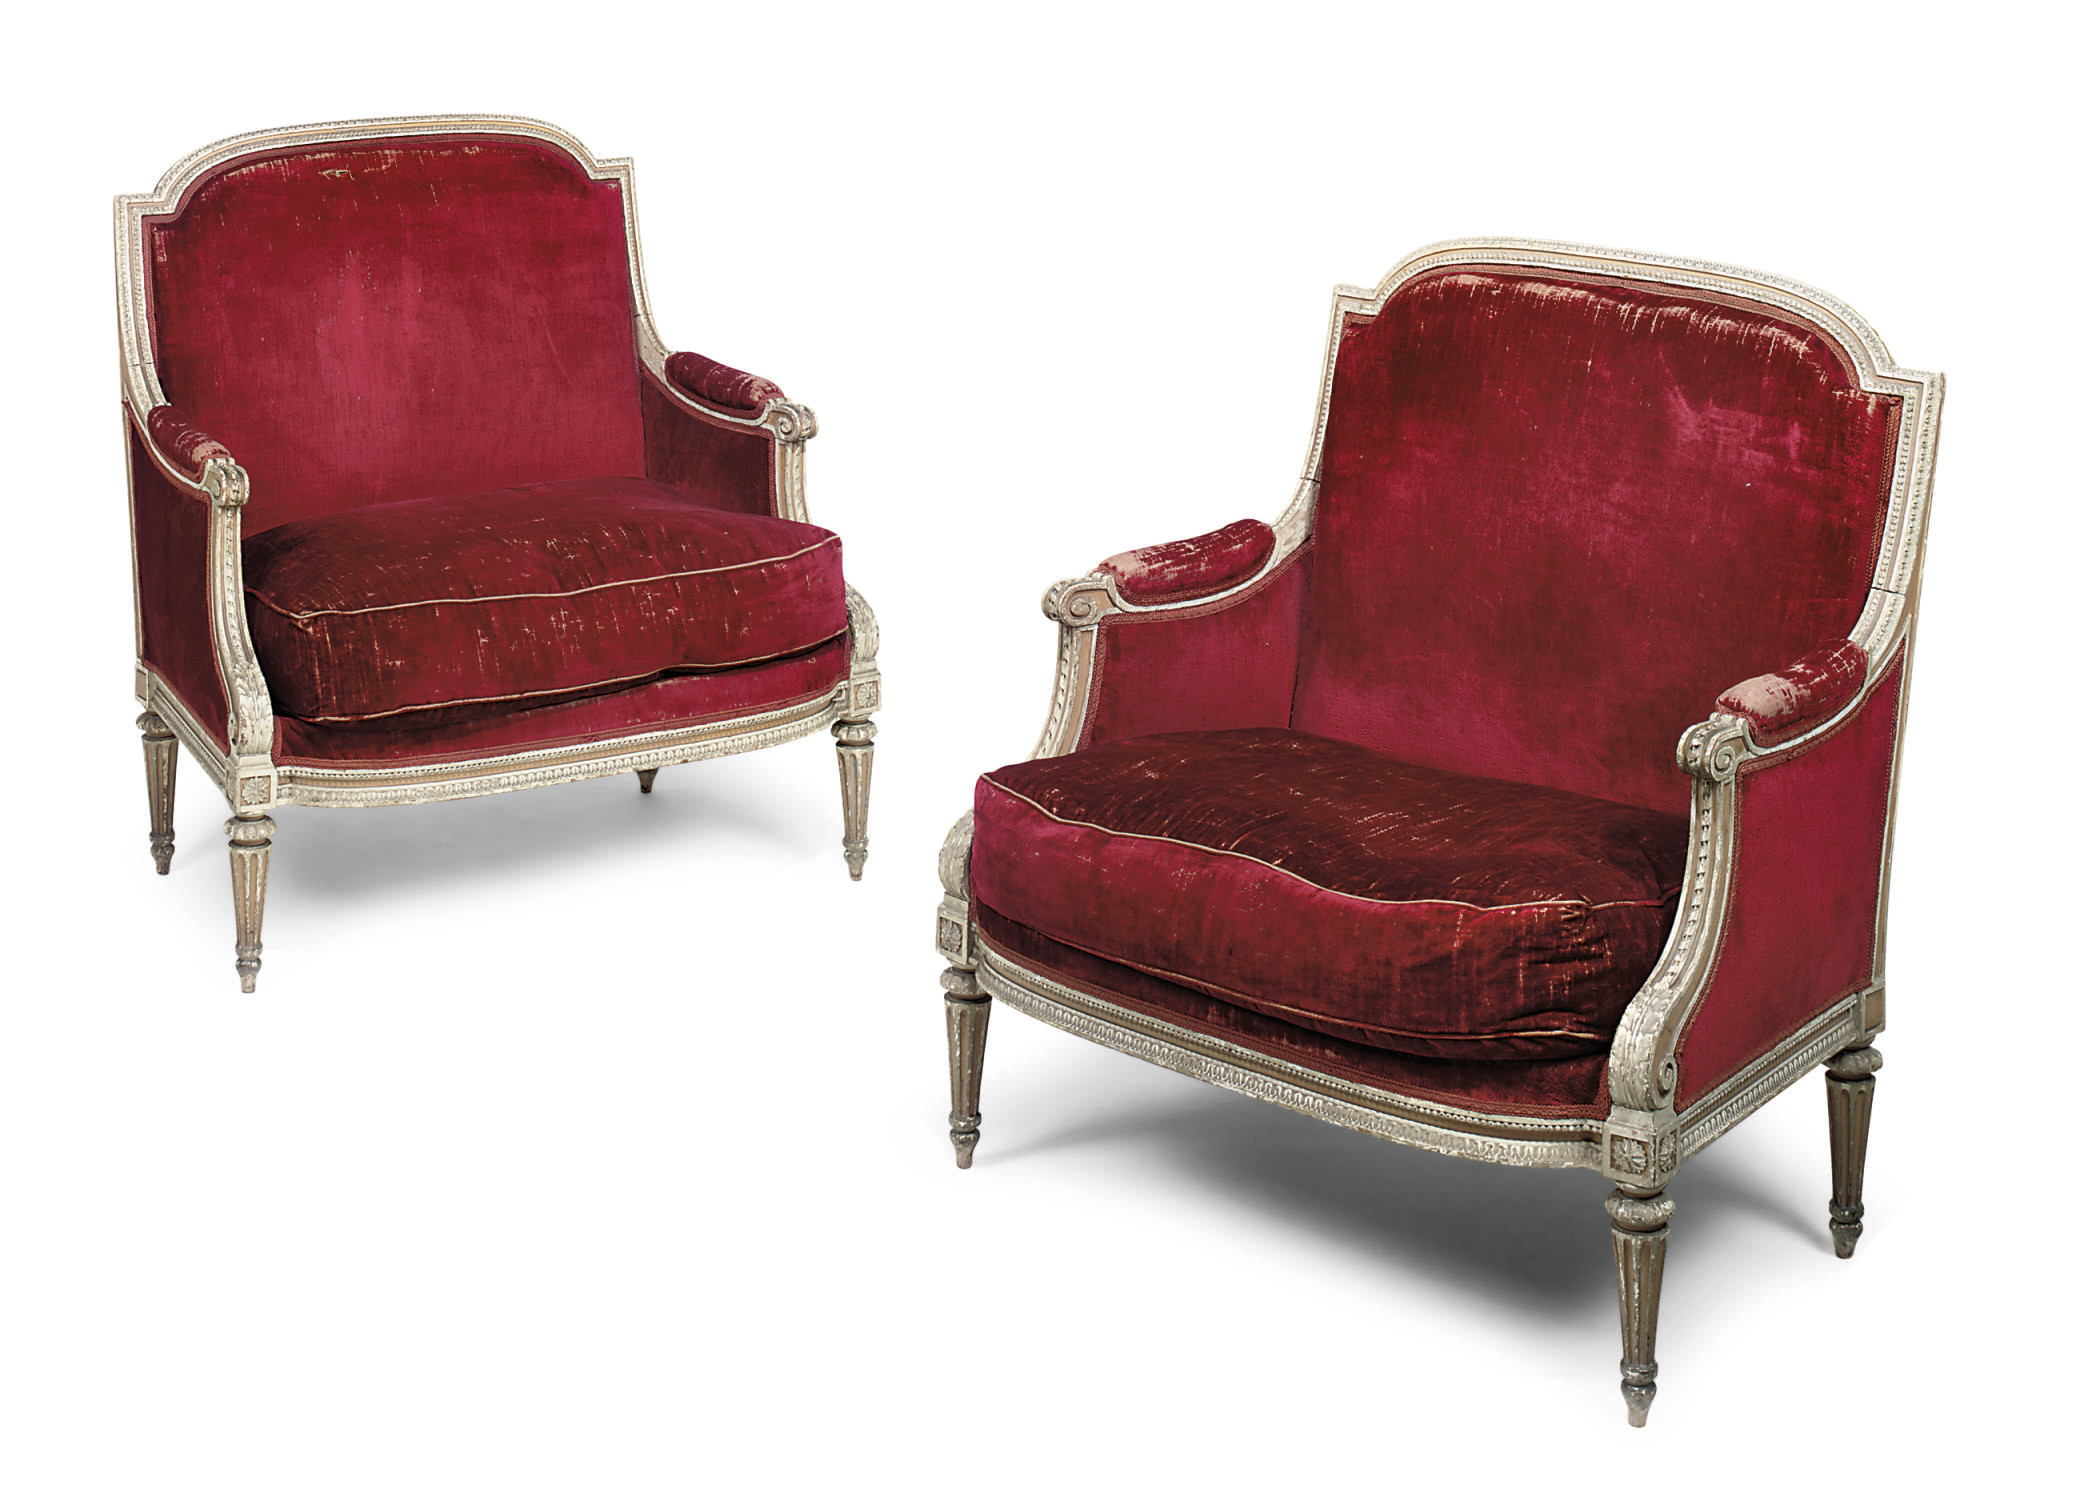 A PAIR OF FRENCH GREY AND YELLOW PAINTED MARQUISES